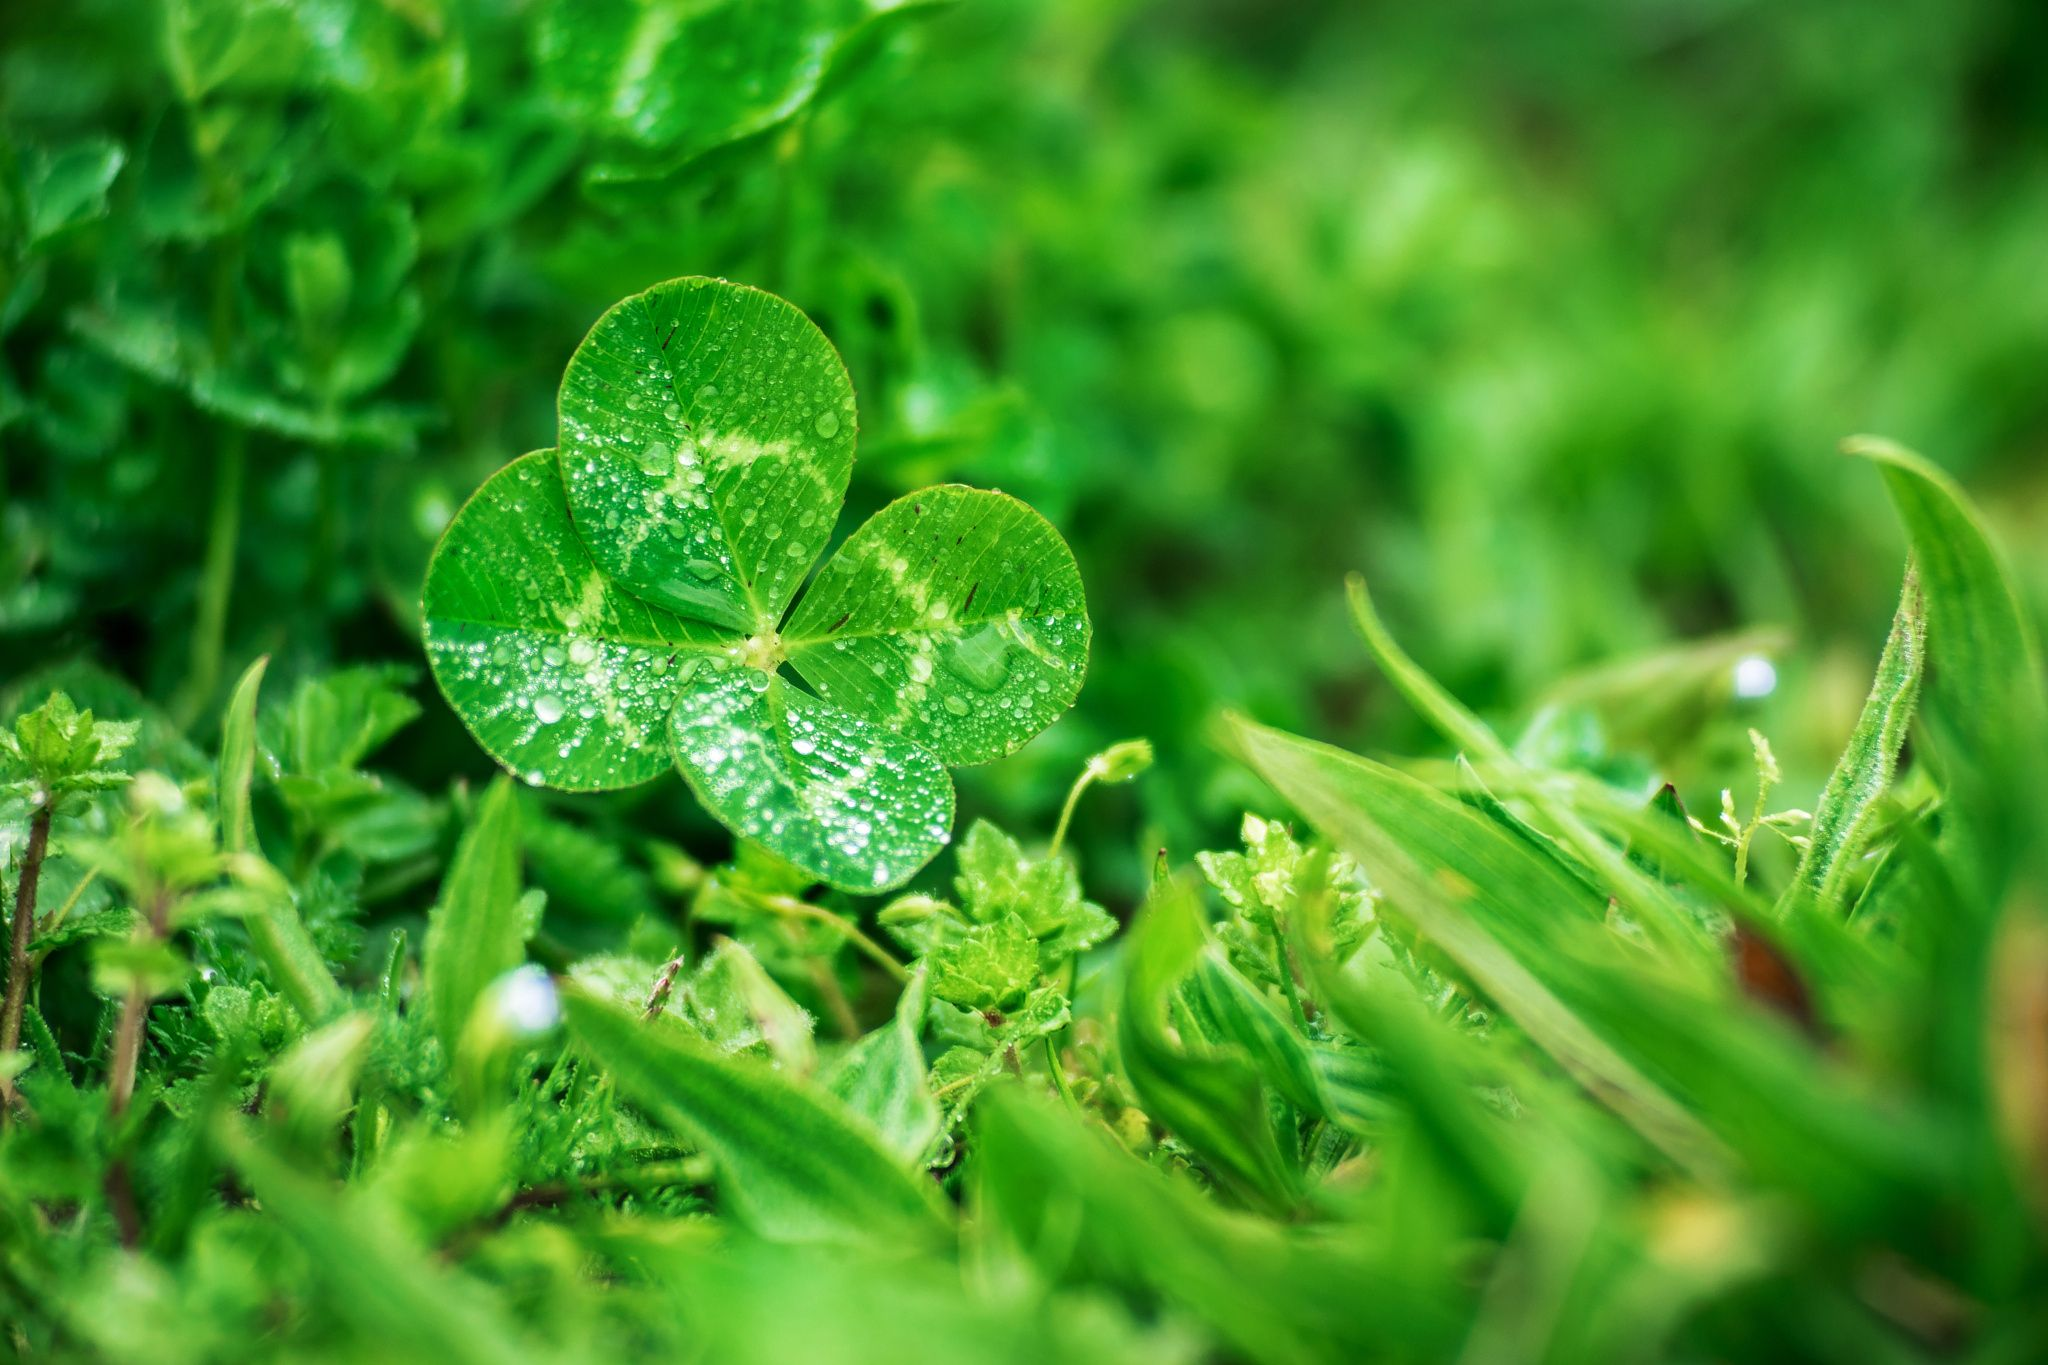 Hope luck to you by Etienne Regis on 500px